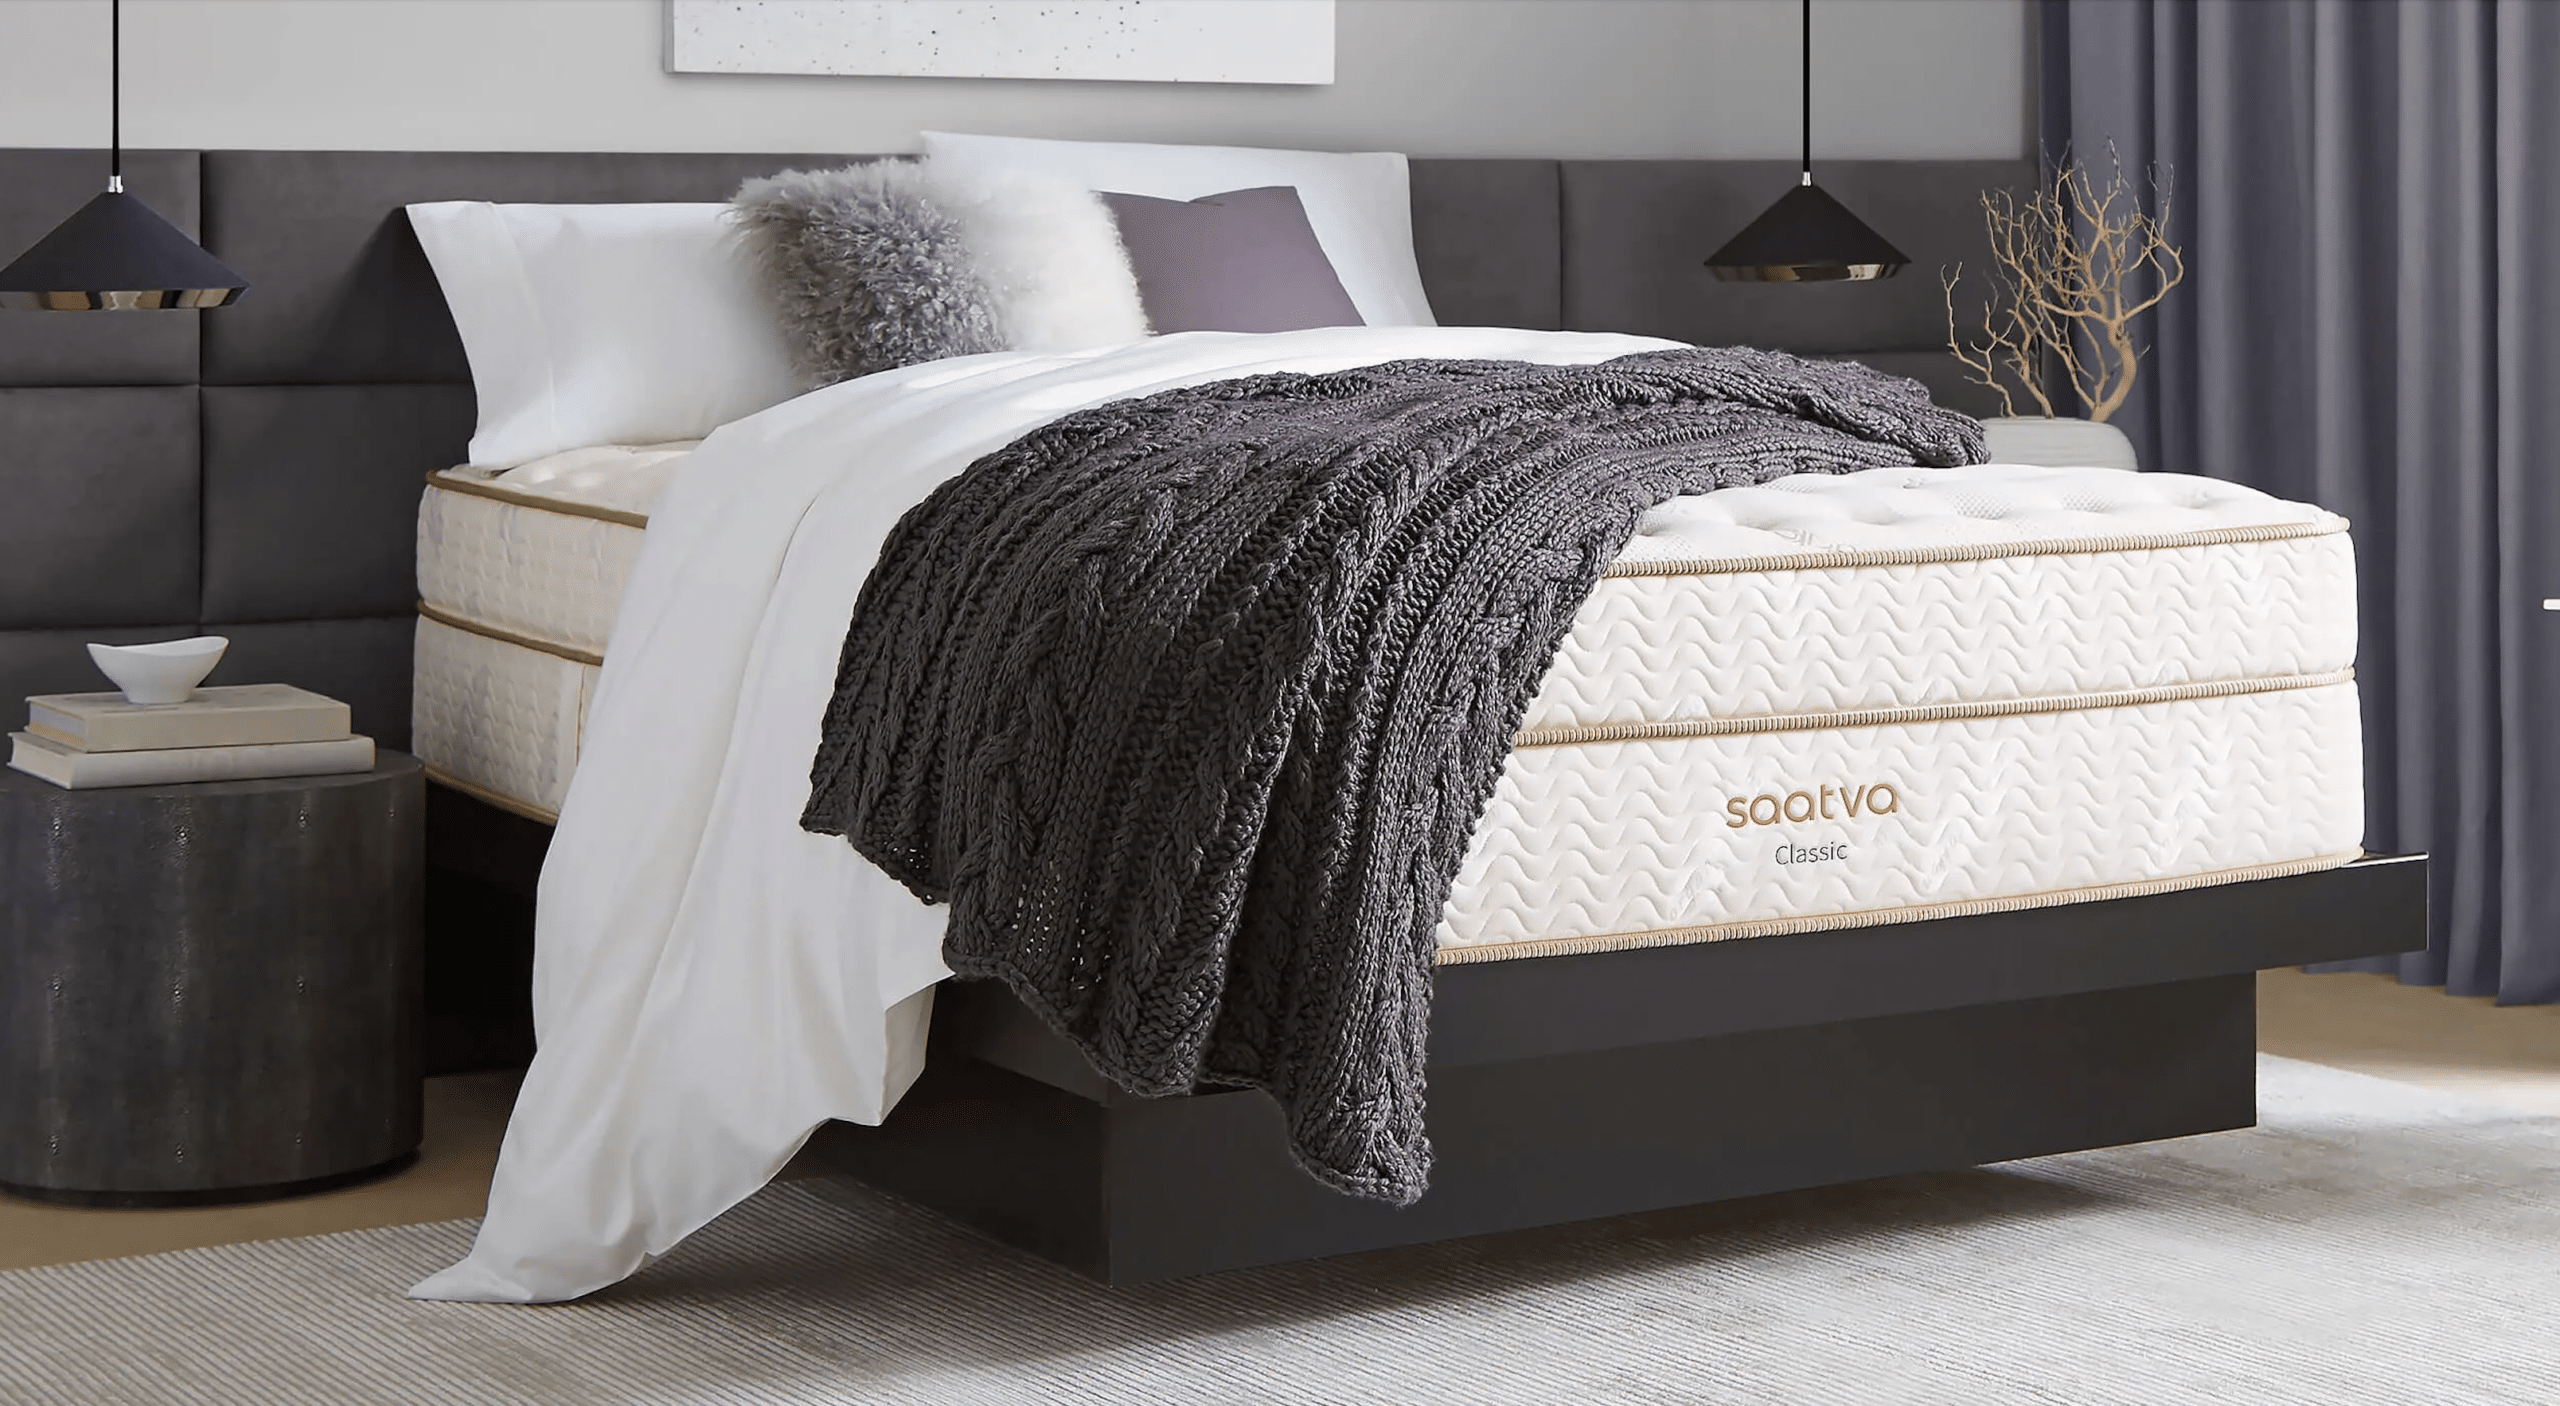 ethical and sustainable mattress